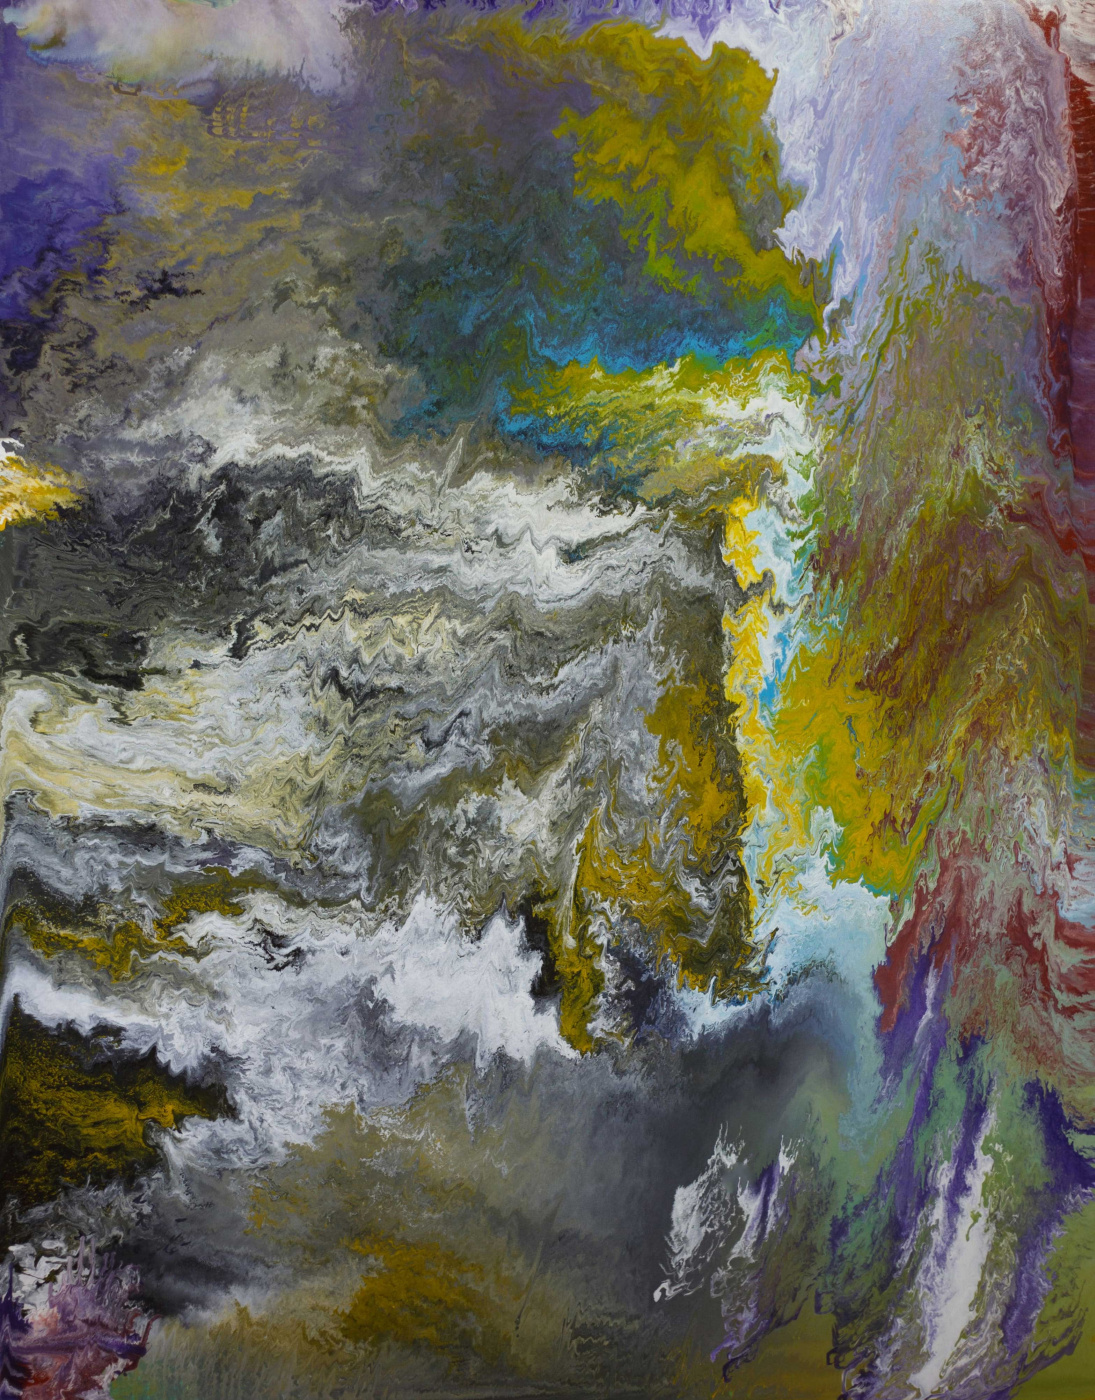 """Alla Struchayeva. The painting """"Earth through the eyes of the universe"""""""